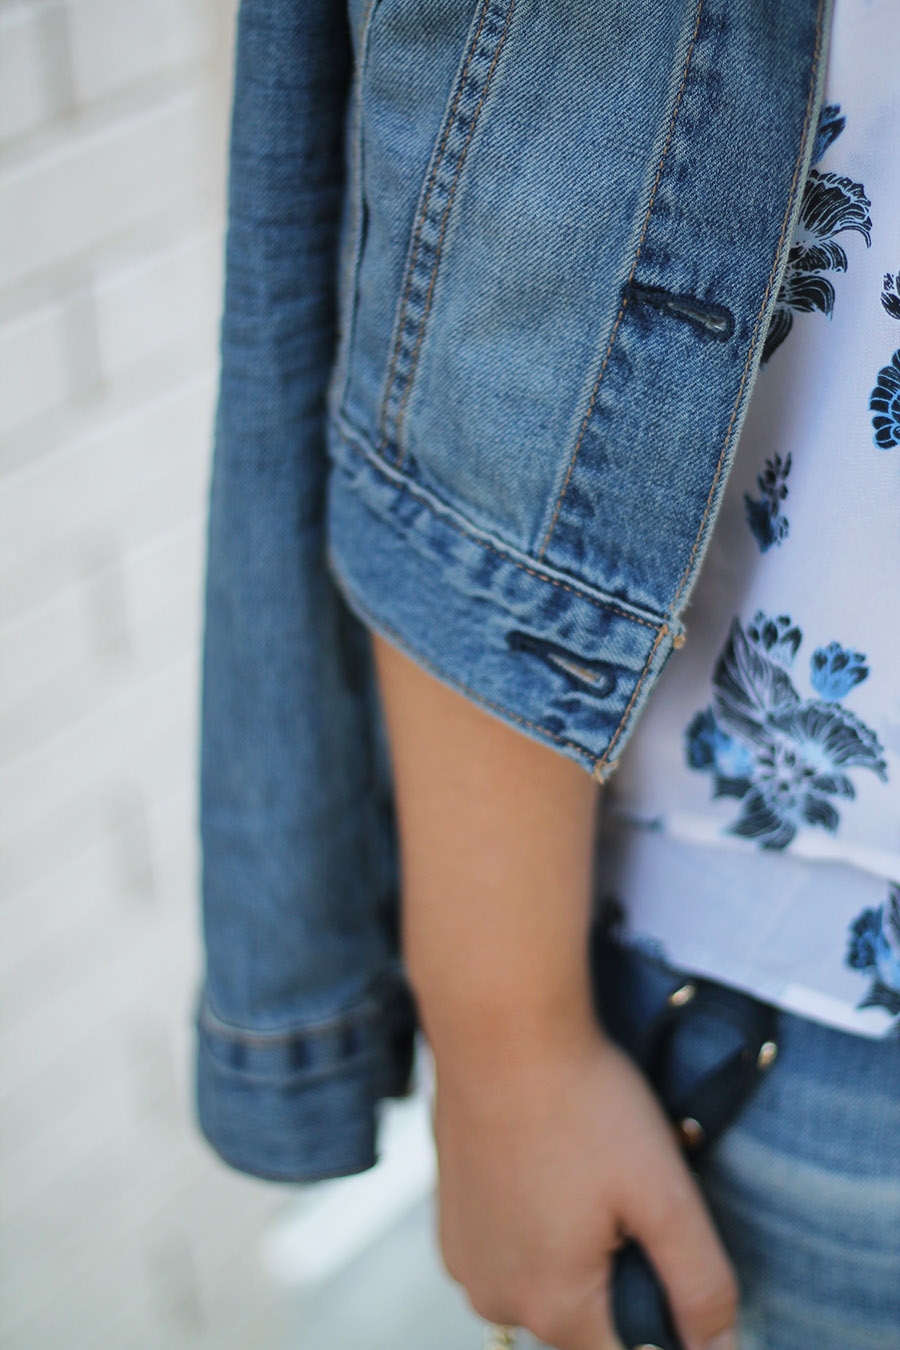 denim-jacket-outfit-details-a-side-of-vogue